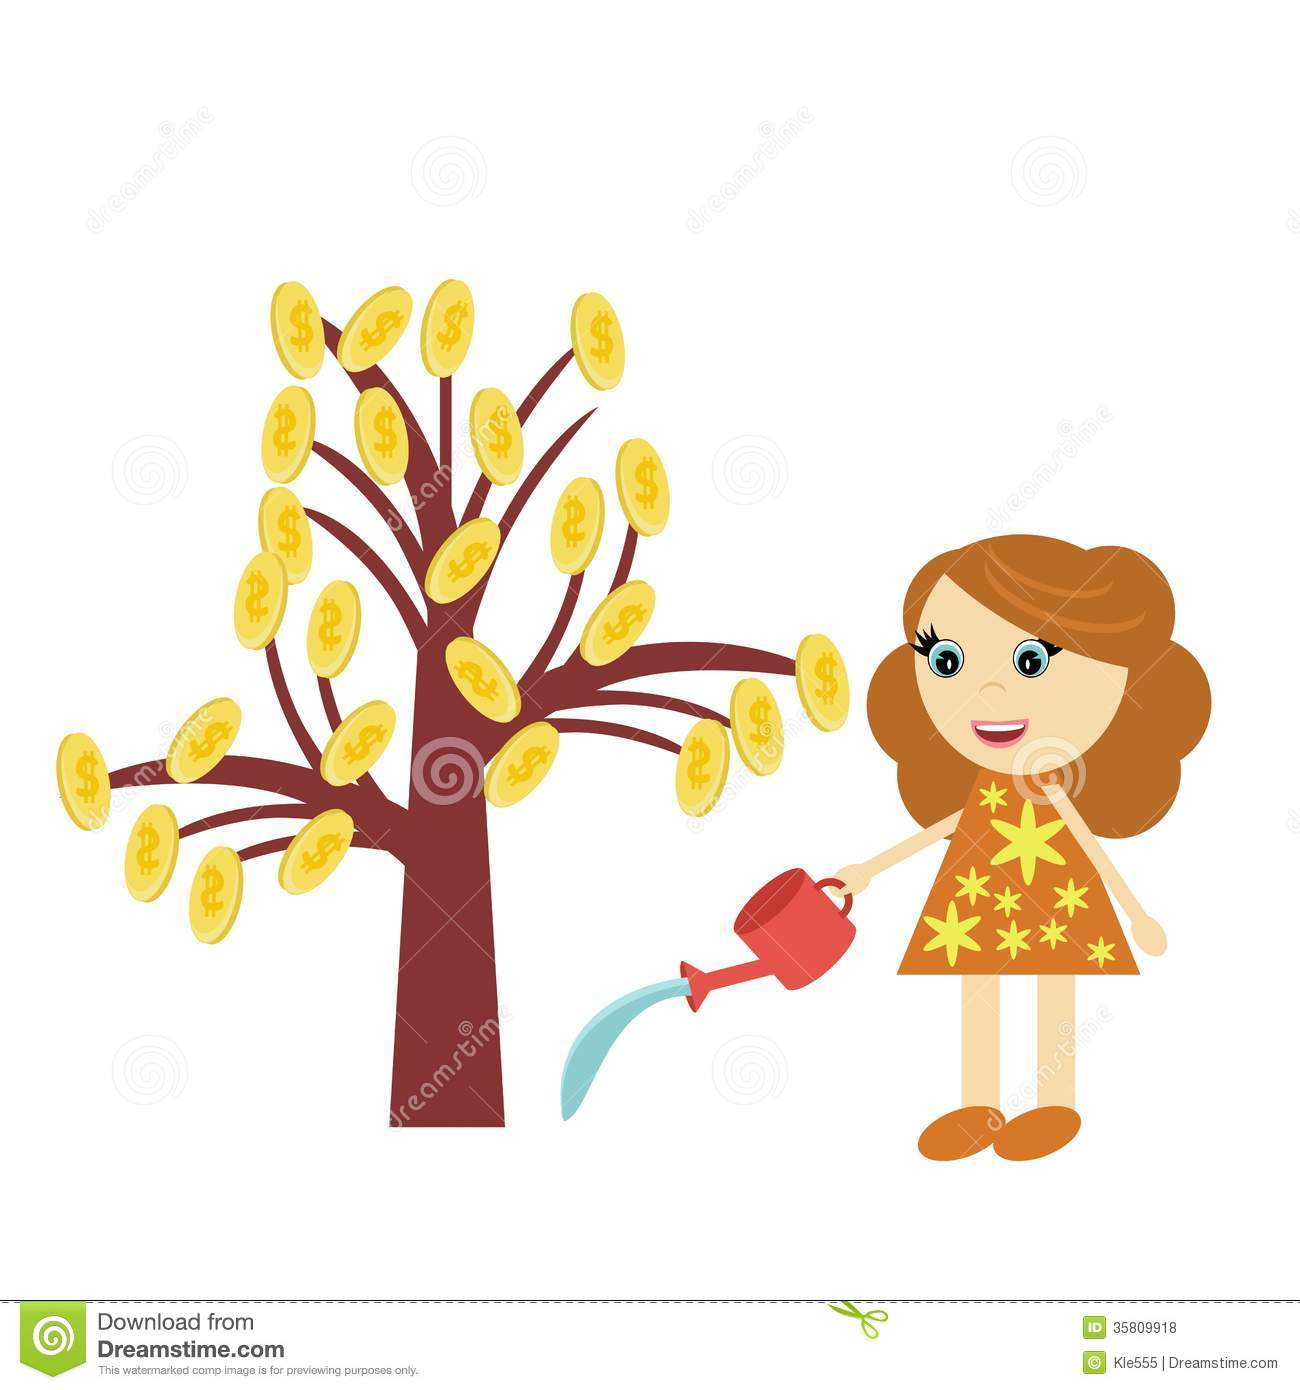 Watering a tree clipart.